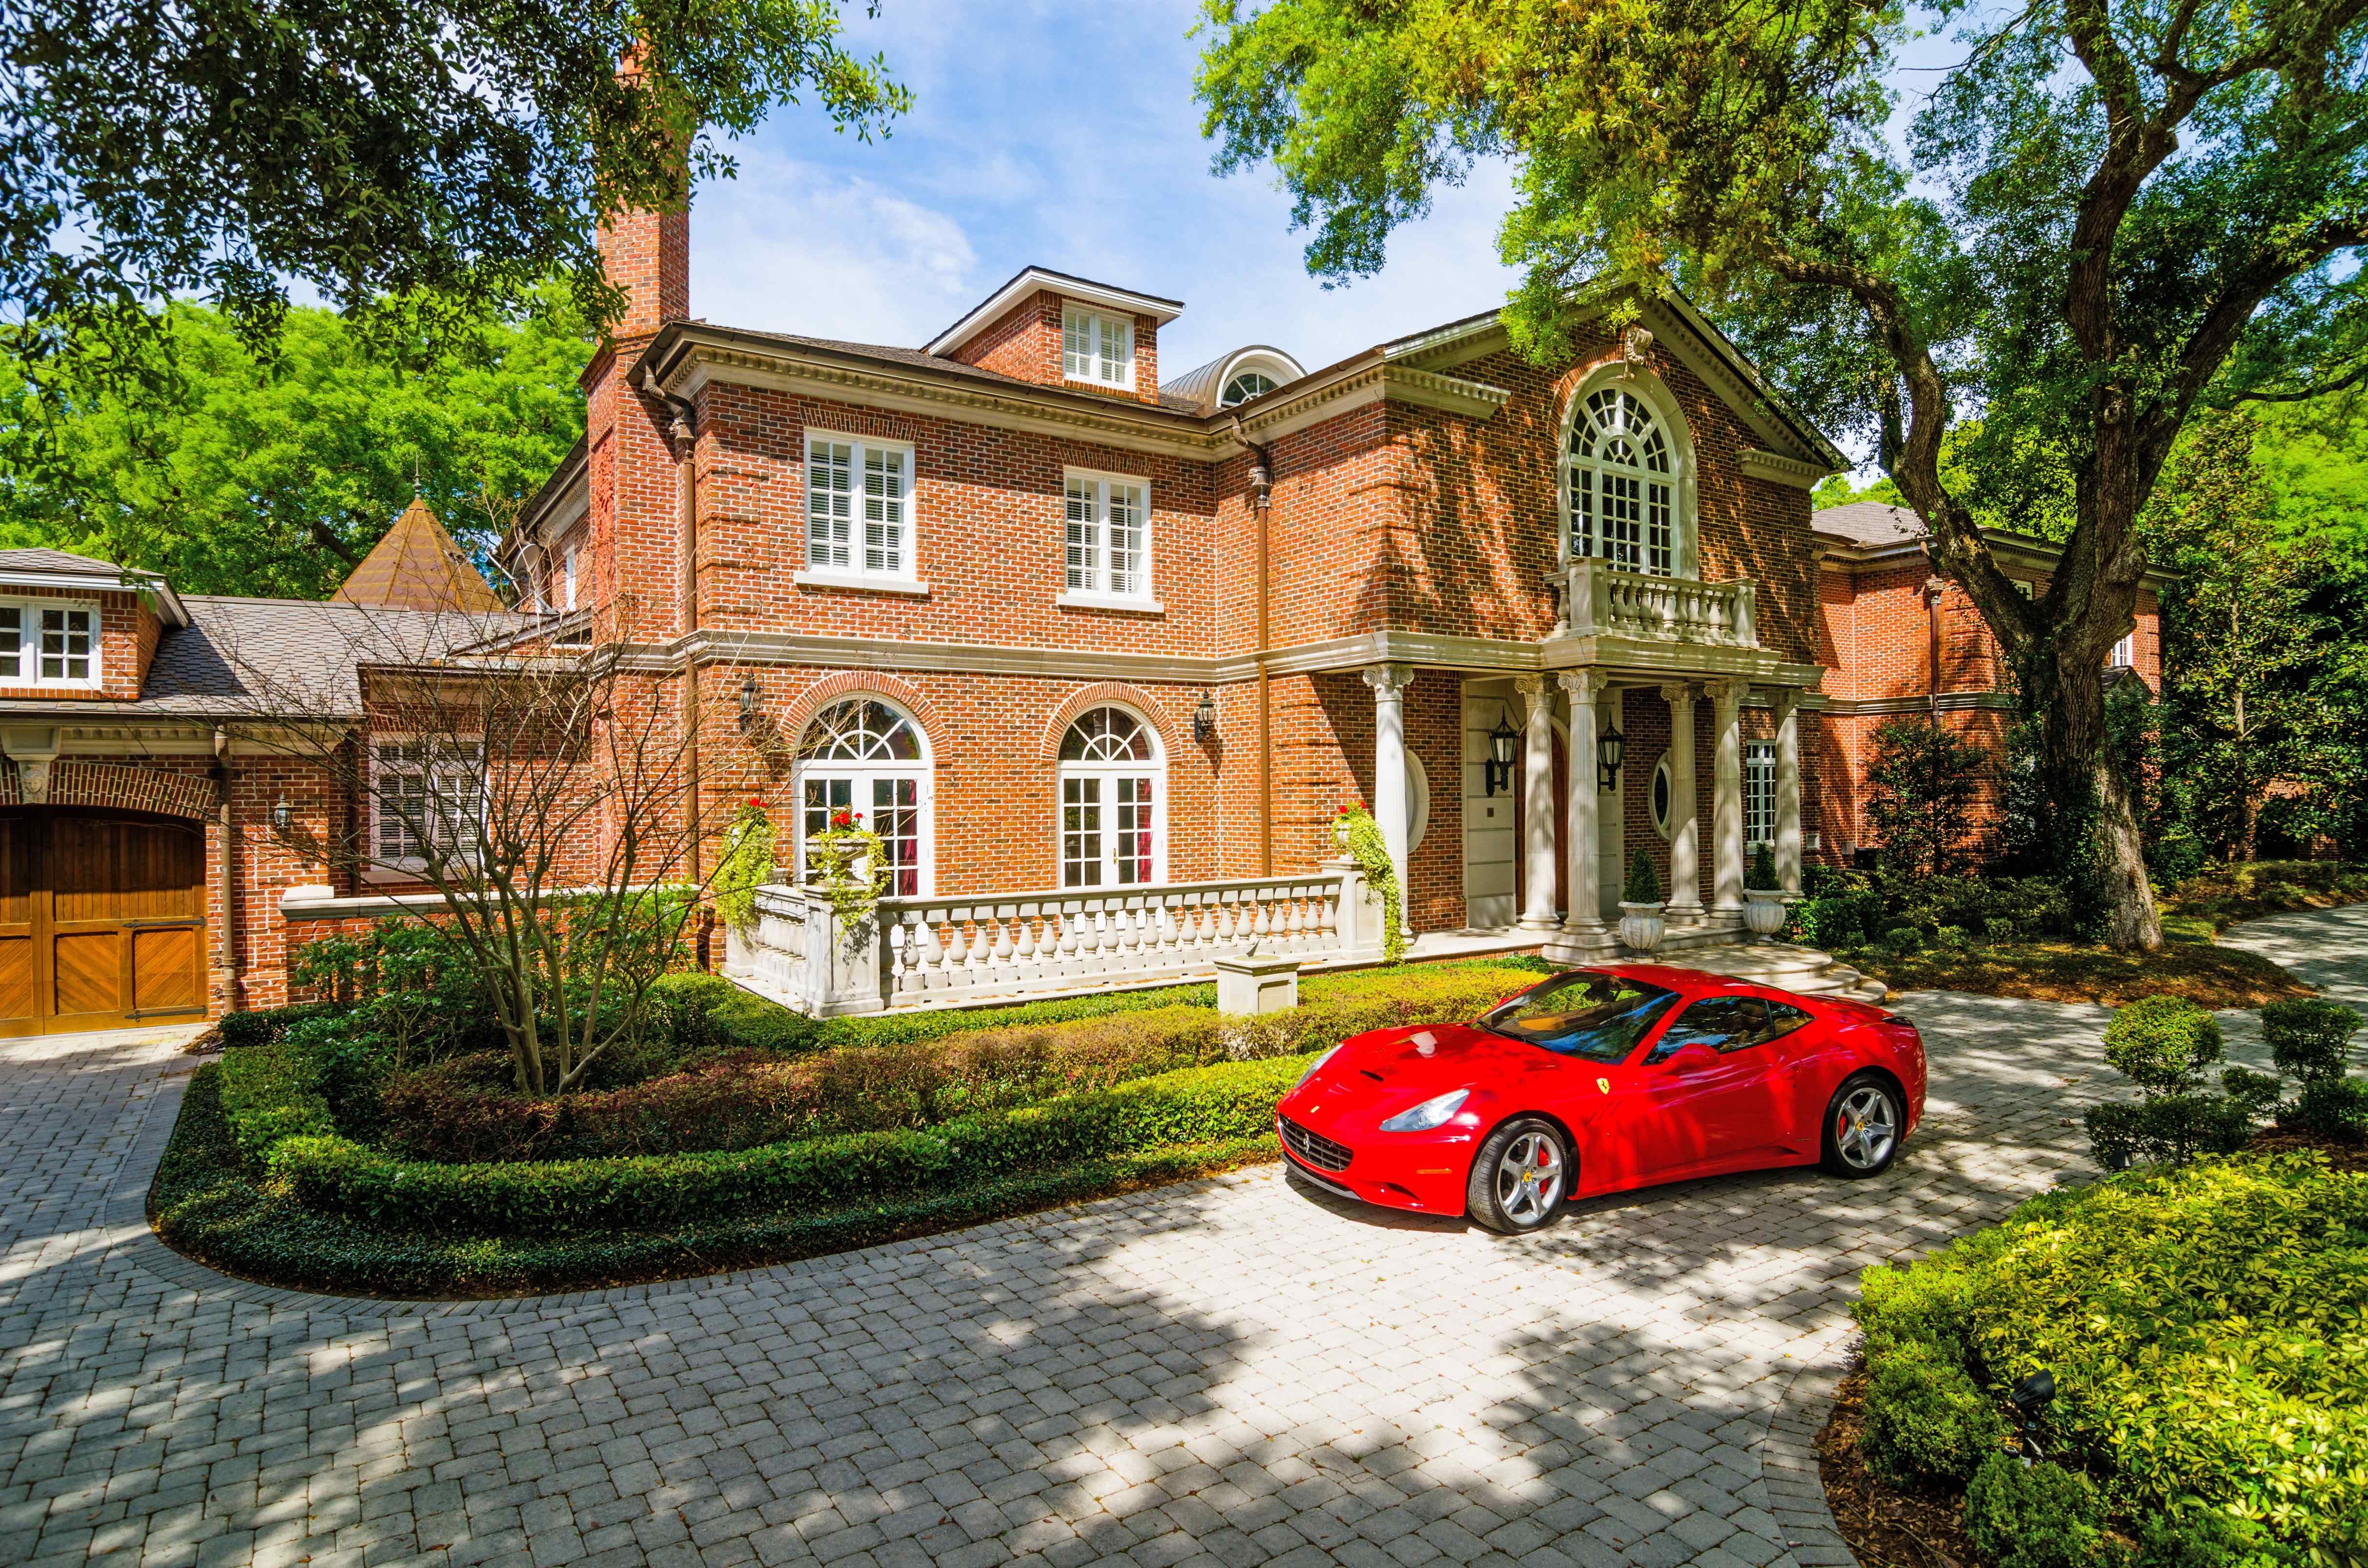 Hollywood Producer S Luxury South Tampa Home To Be Sold